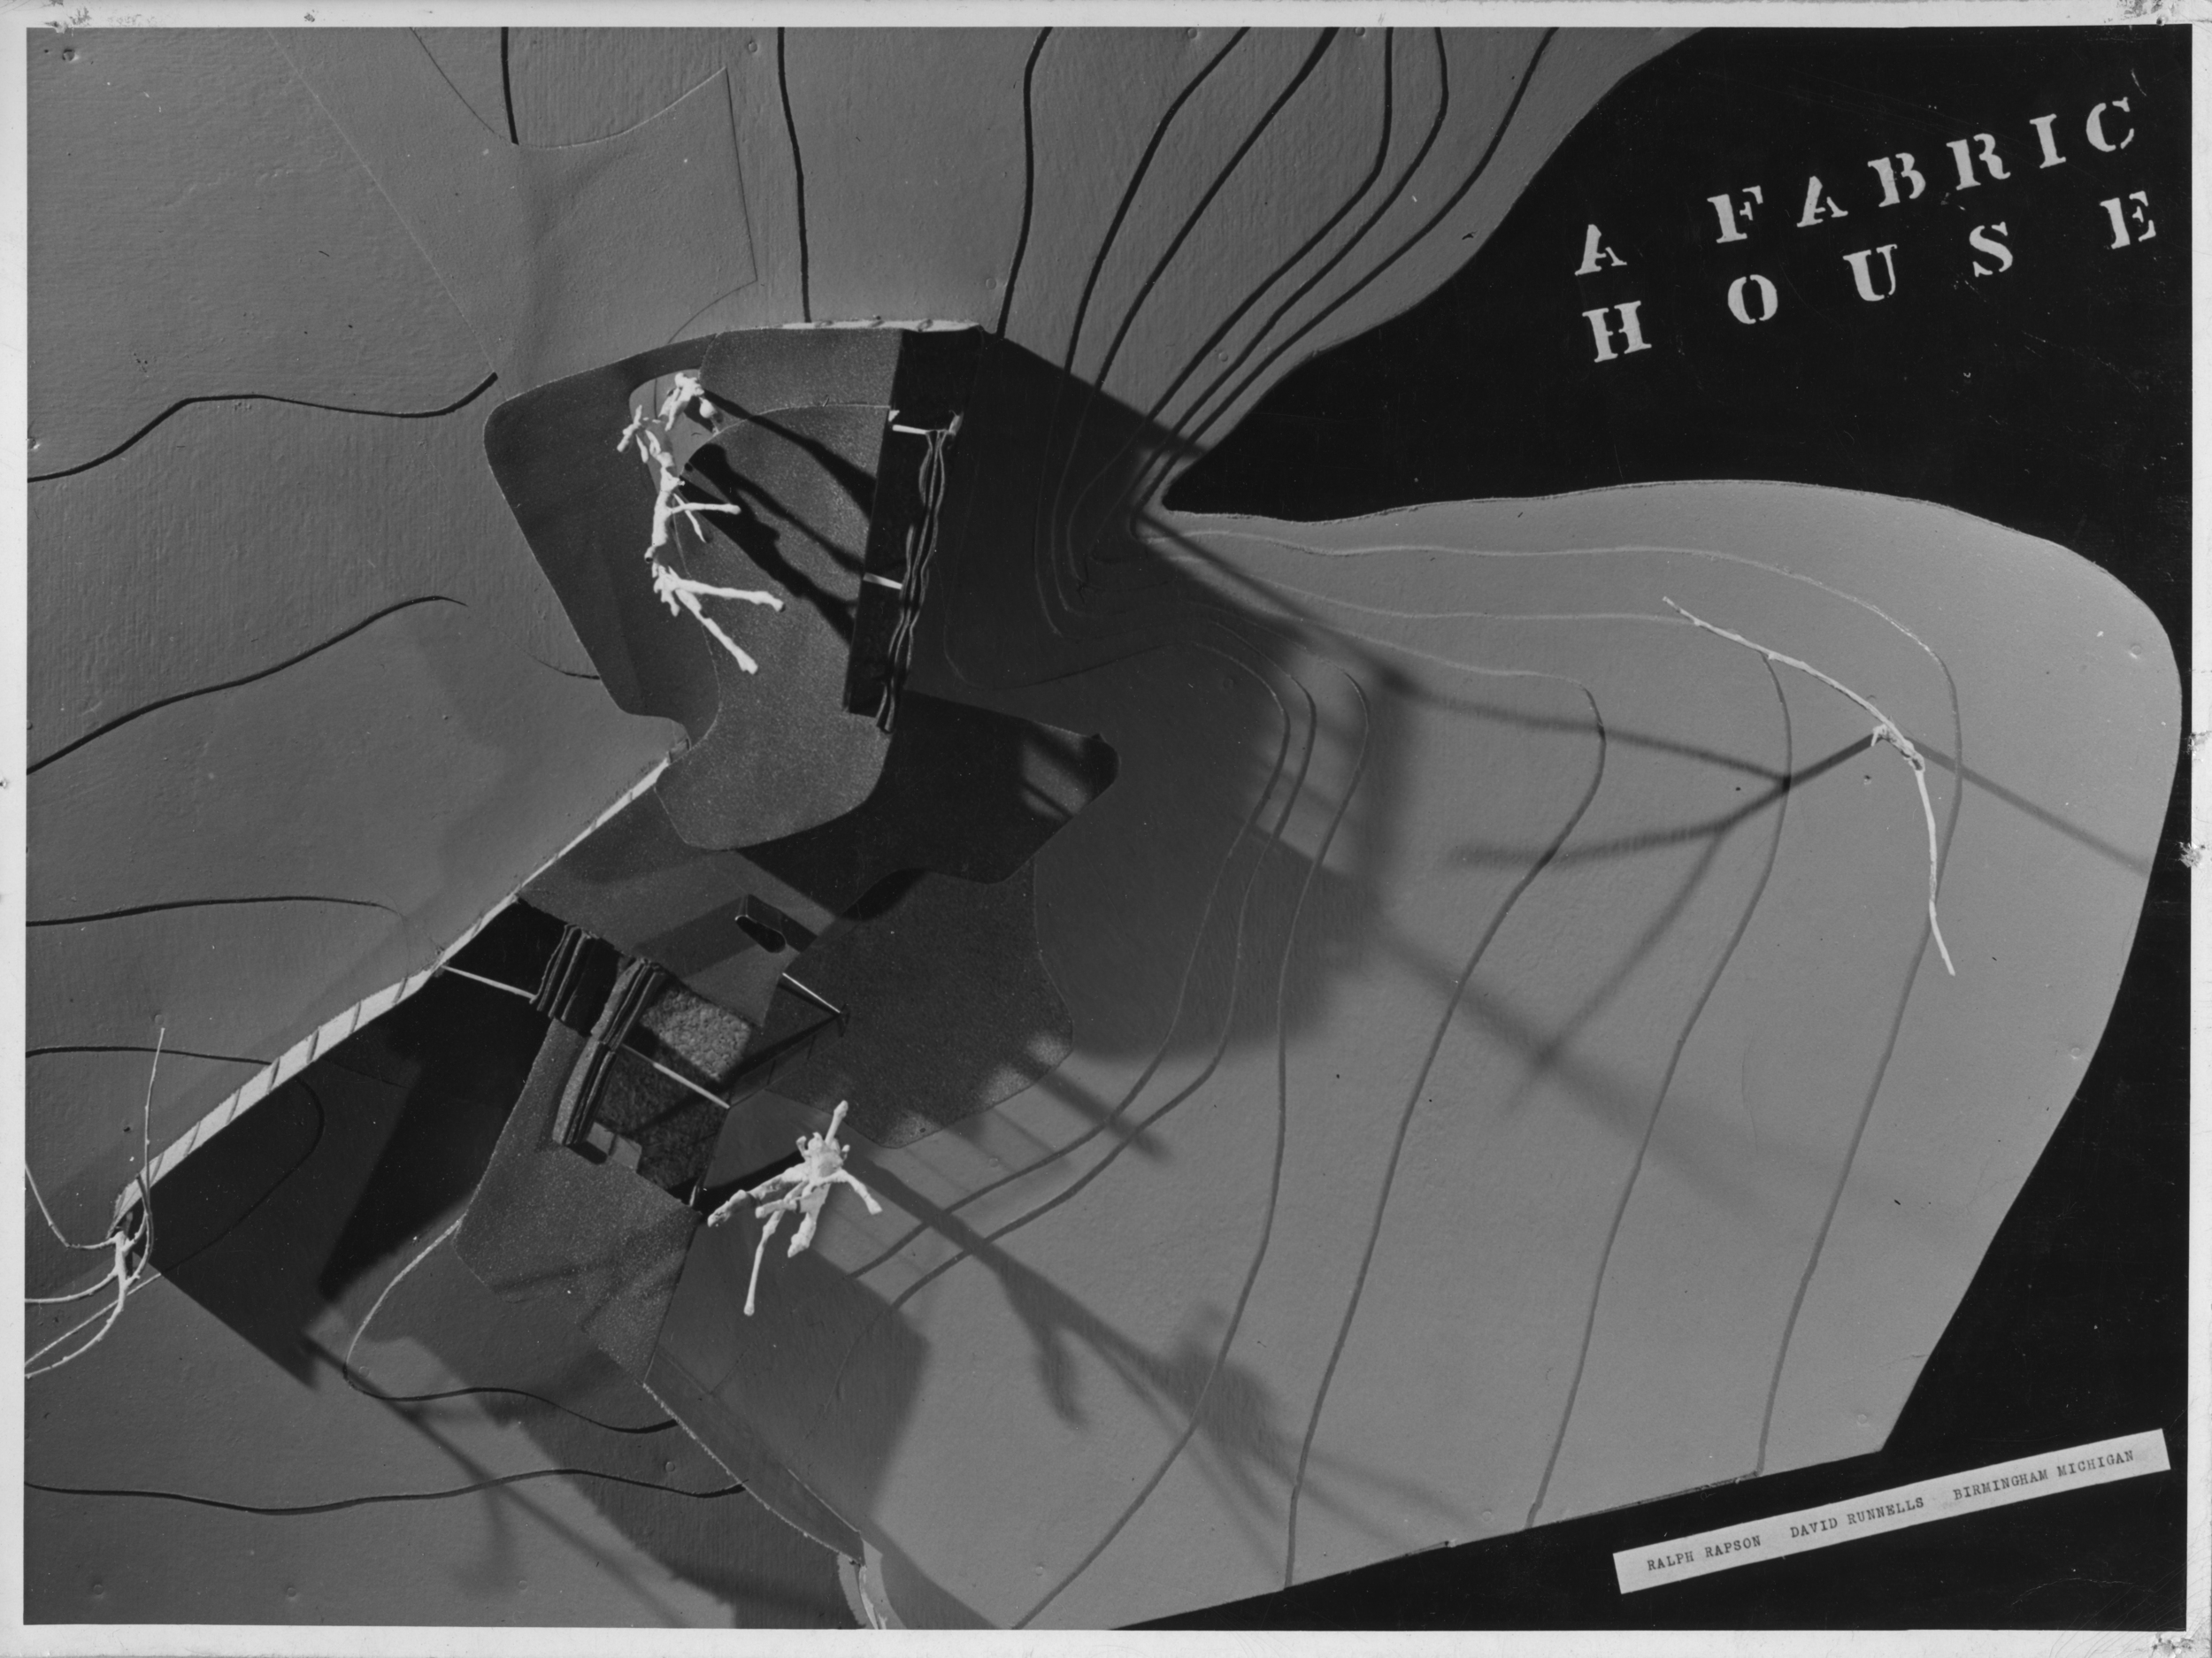 Fabric House - Competition Entry - David B. Runnells with Ralph Rapson